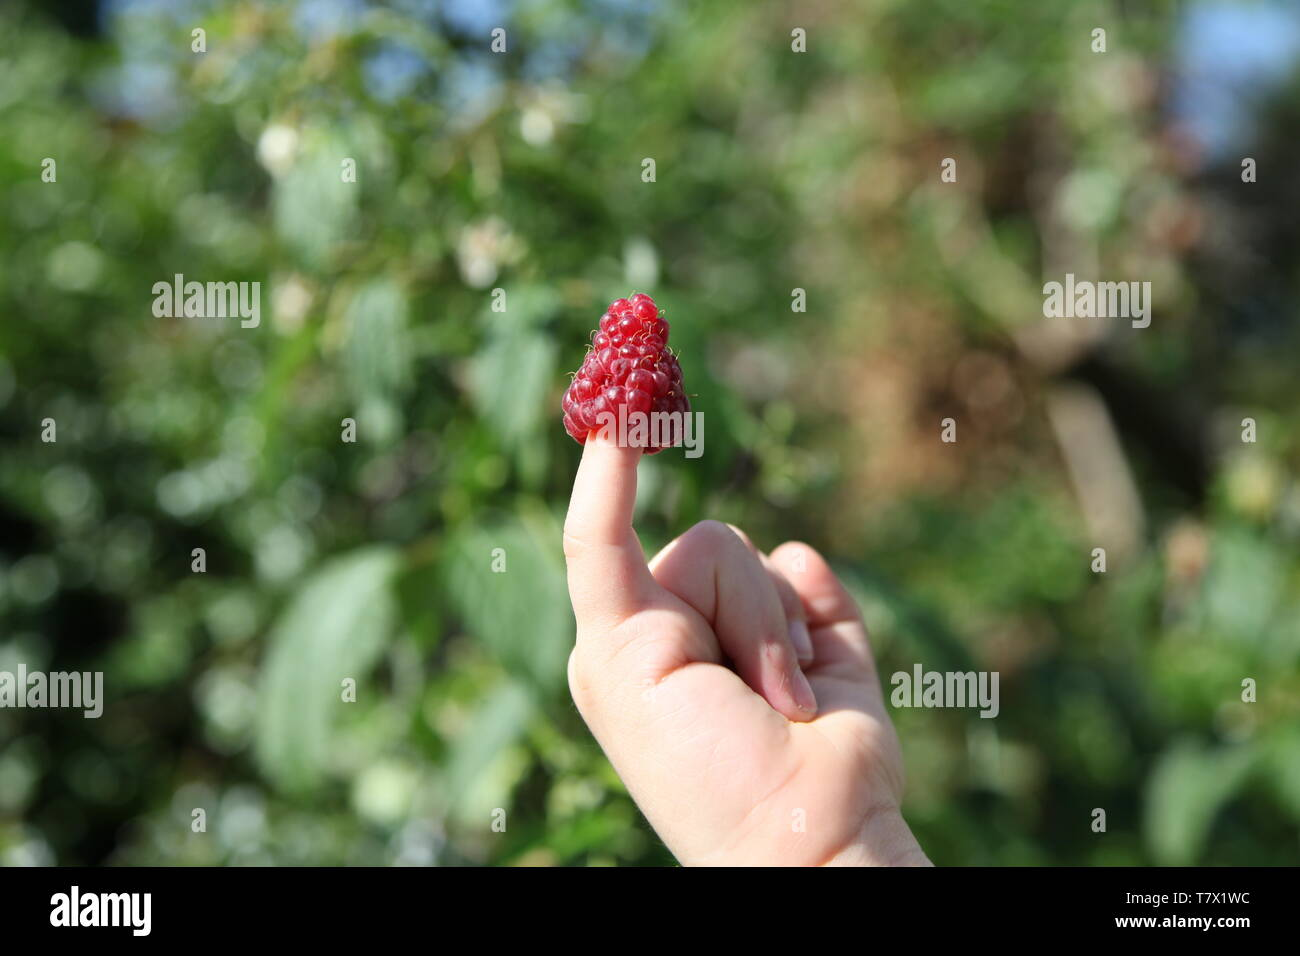 English, red, ripe Raspberry closeup on a child's fingertip in a summer garden during daytime - Stock Image